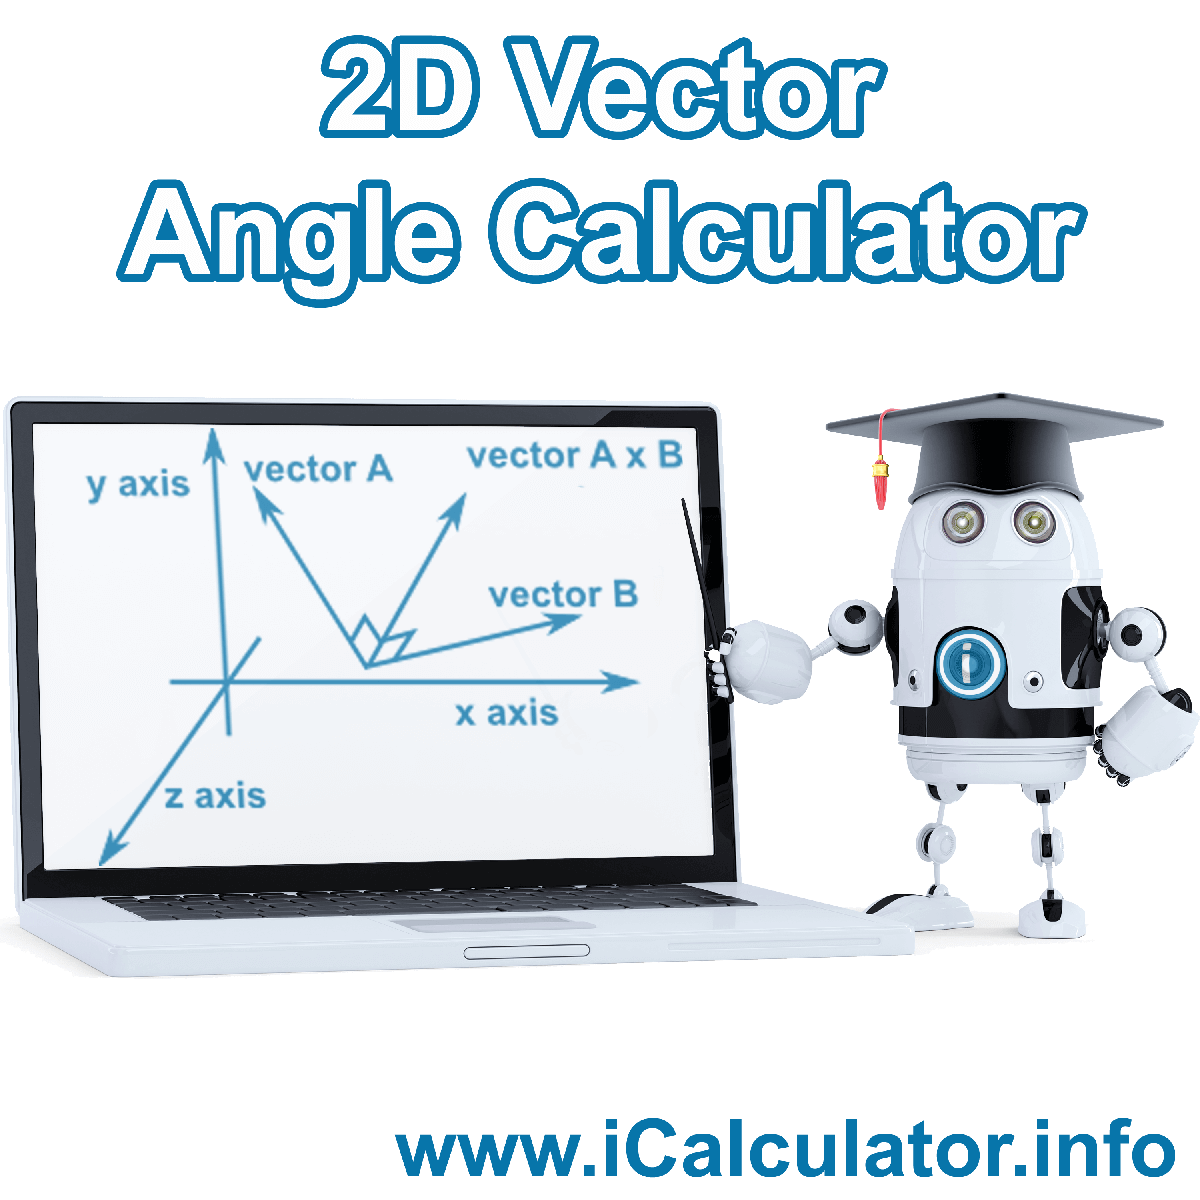 2D Vector Angle Calculator. This image shows 2D Vector Angle with associated calculations used by the 2D Vector Angle Calculator